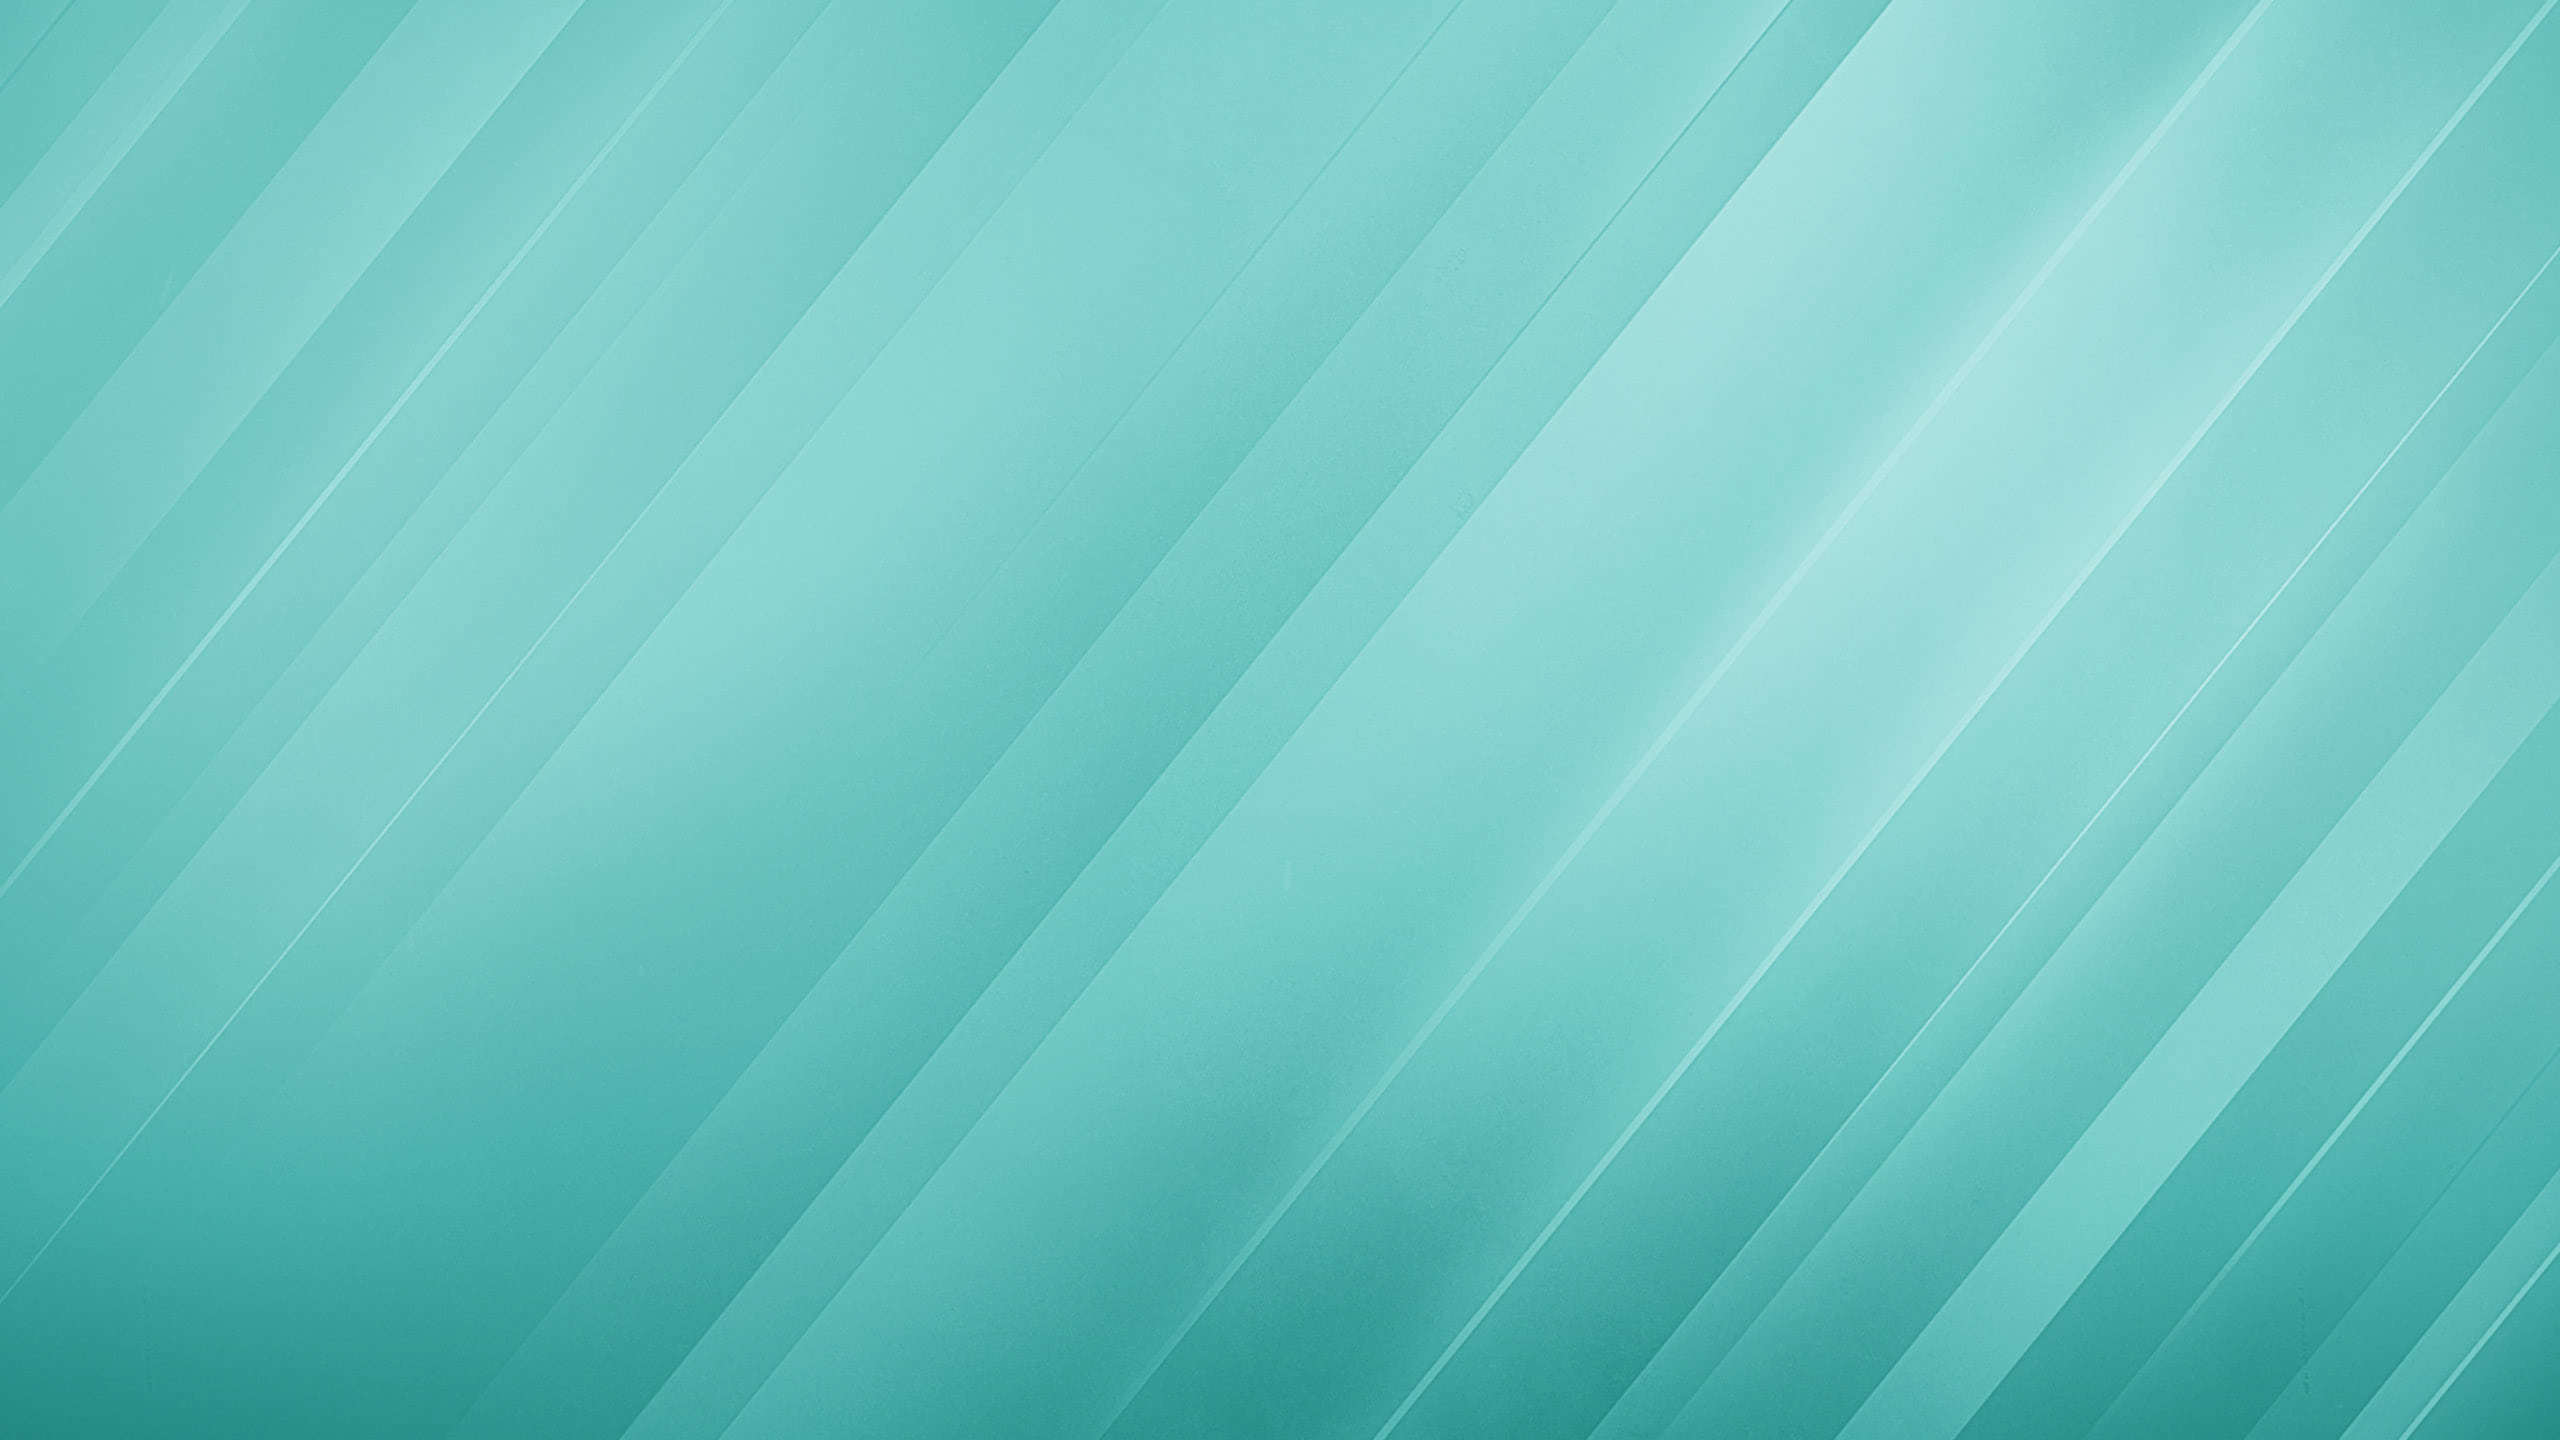 stripes turquoise wqhd 1440p wallpaper